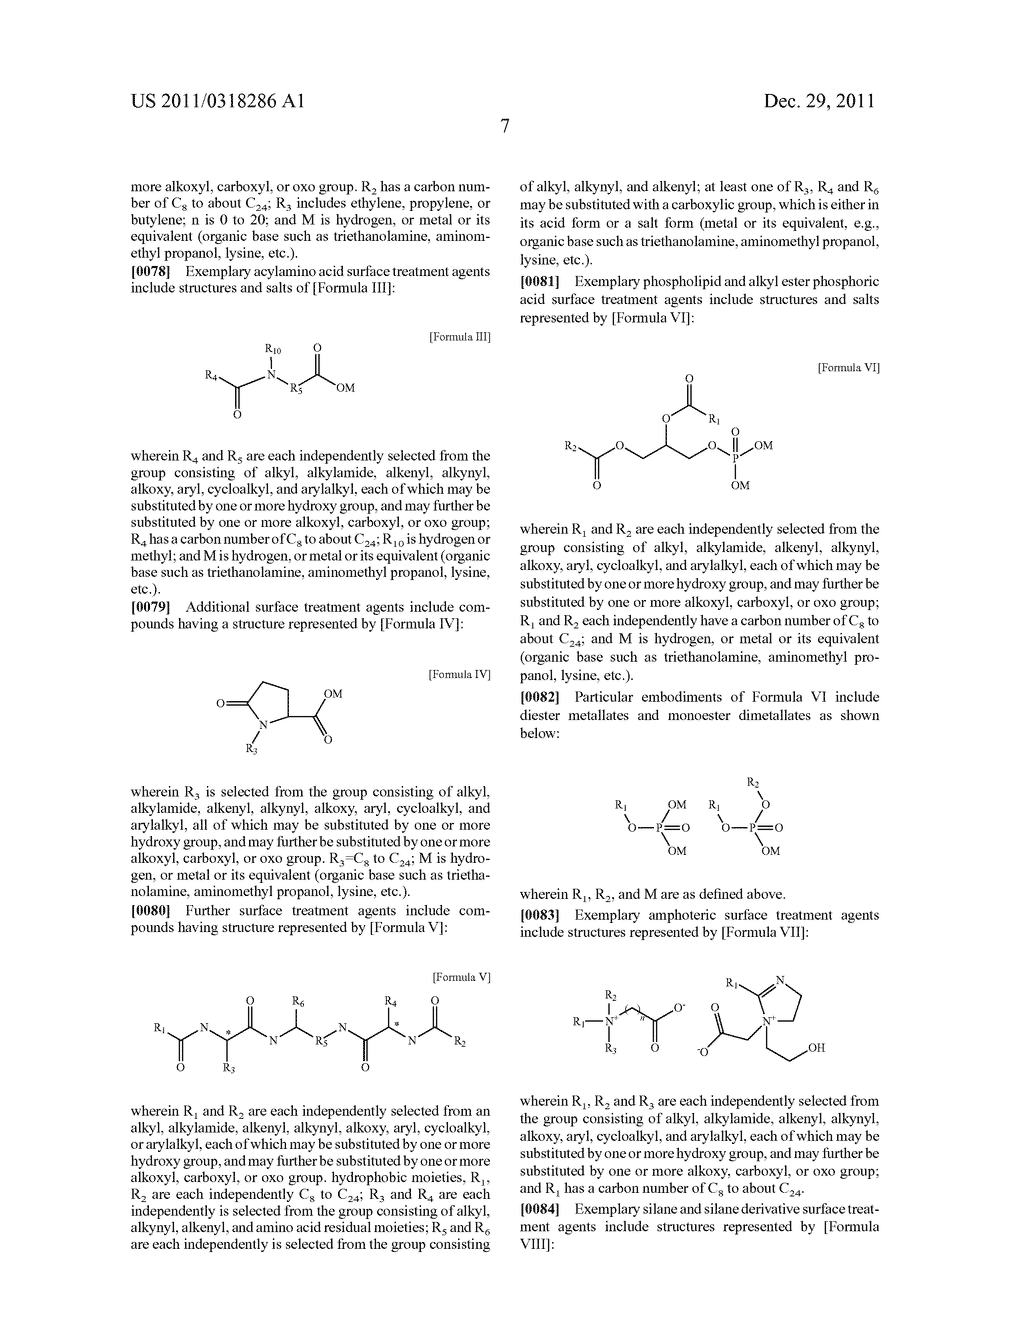 SPF ENHANCED EXTENDED COLOR BULK POWDERS AND METHODS OF MAKING THEREOF - diagram, schematic, and image 19